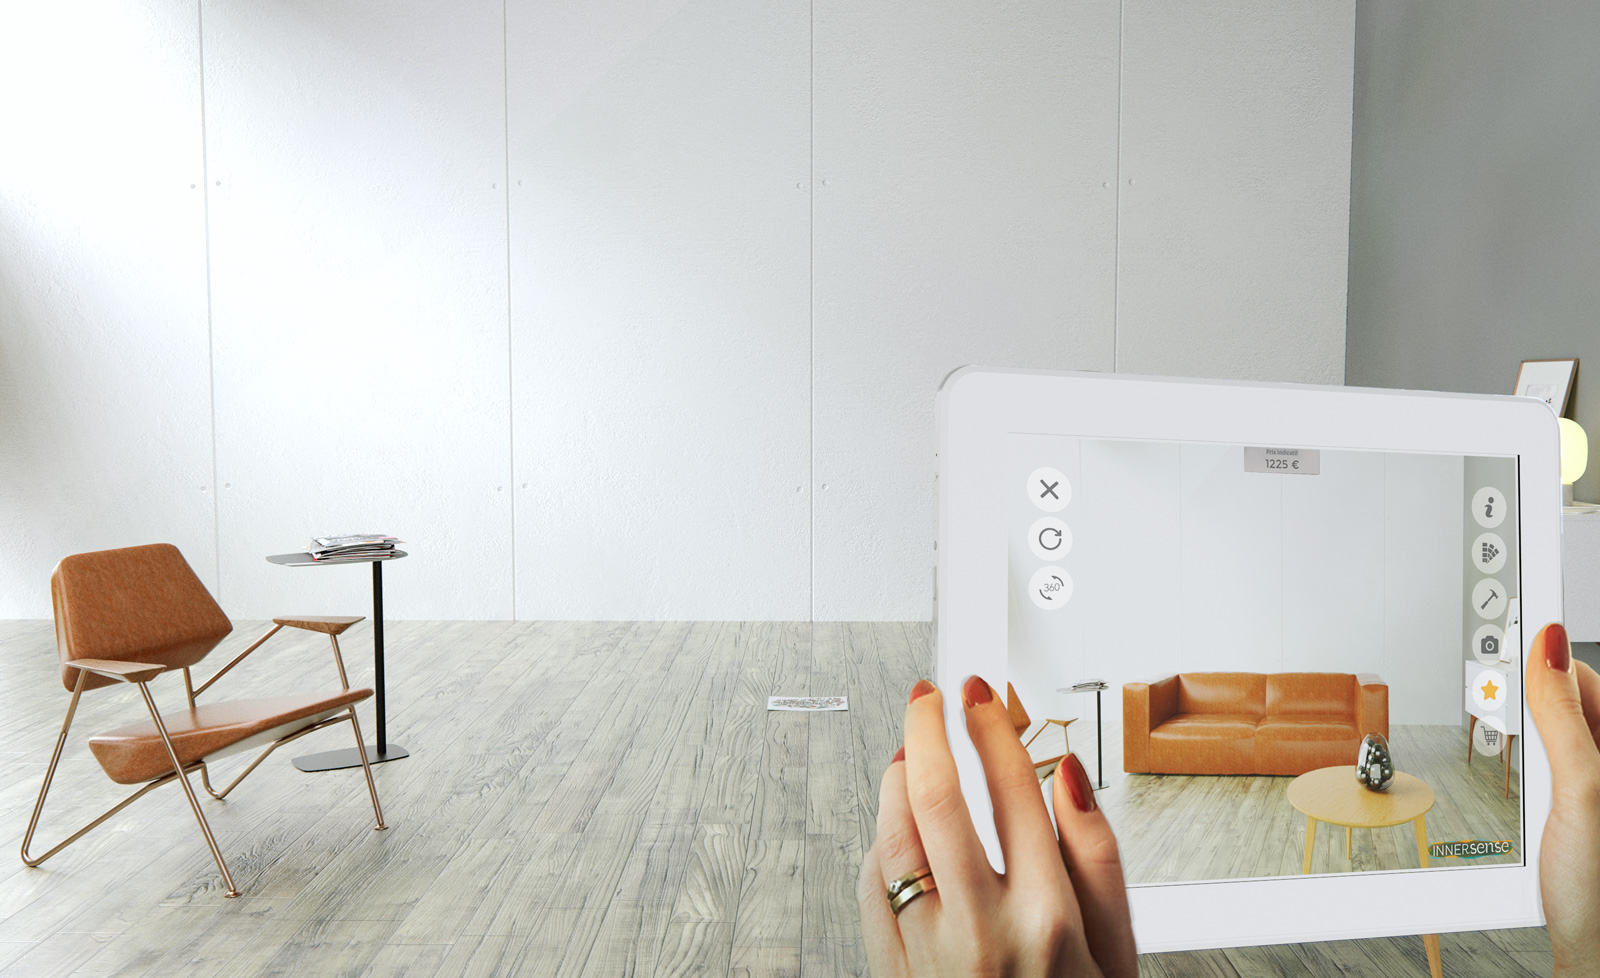 innersense augmented reality-furniture